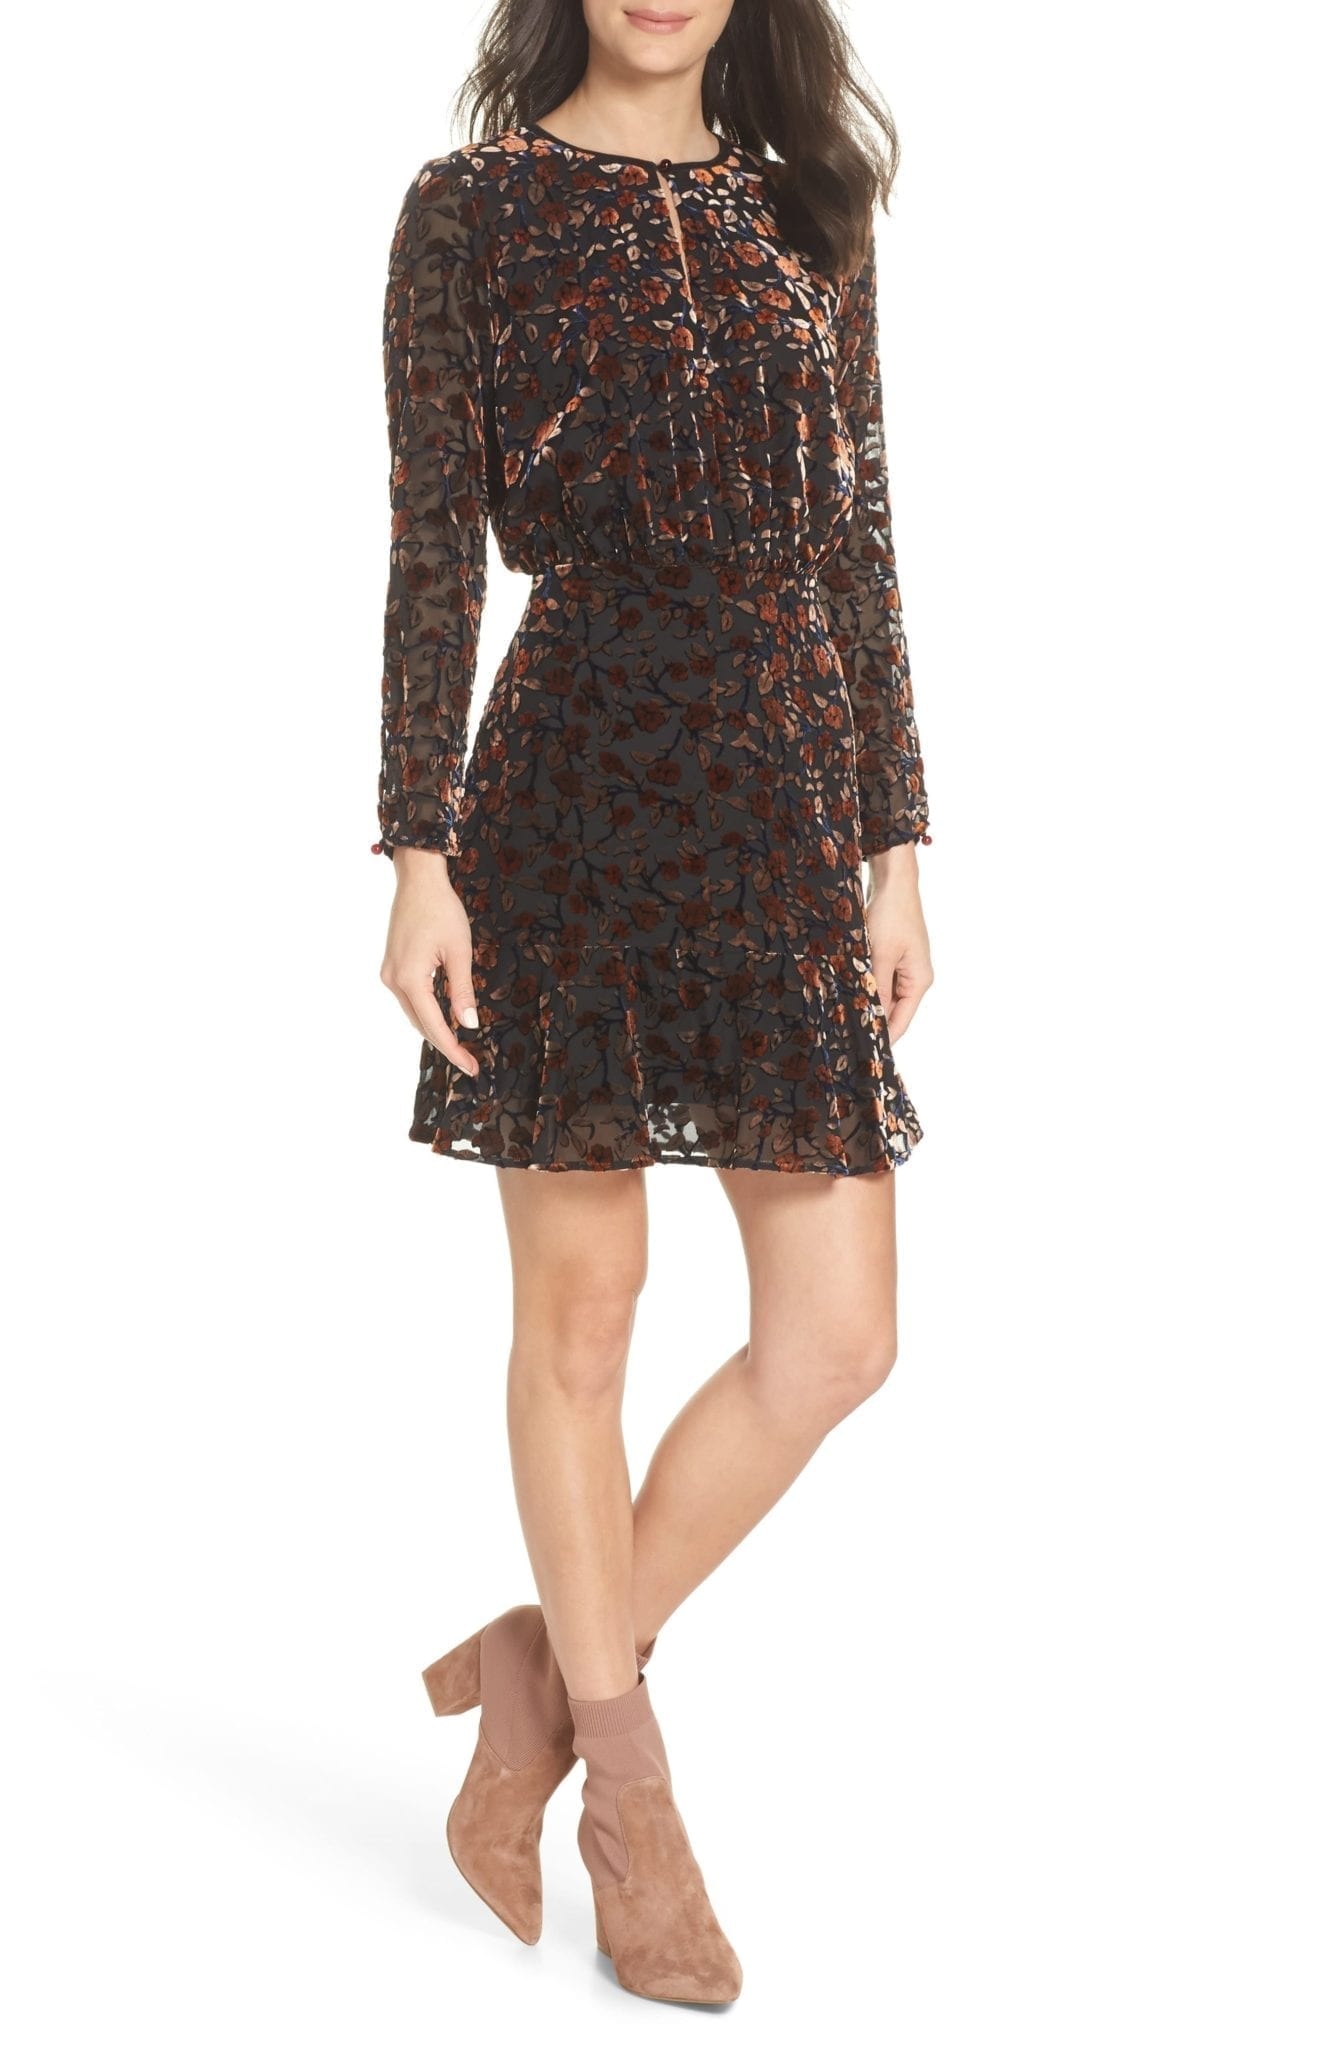 SAM EDELMAN Velvet Burnout Rose / Wine Dress